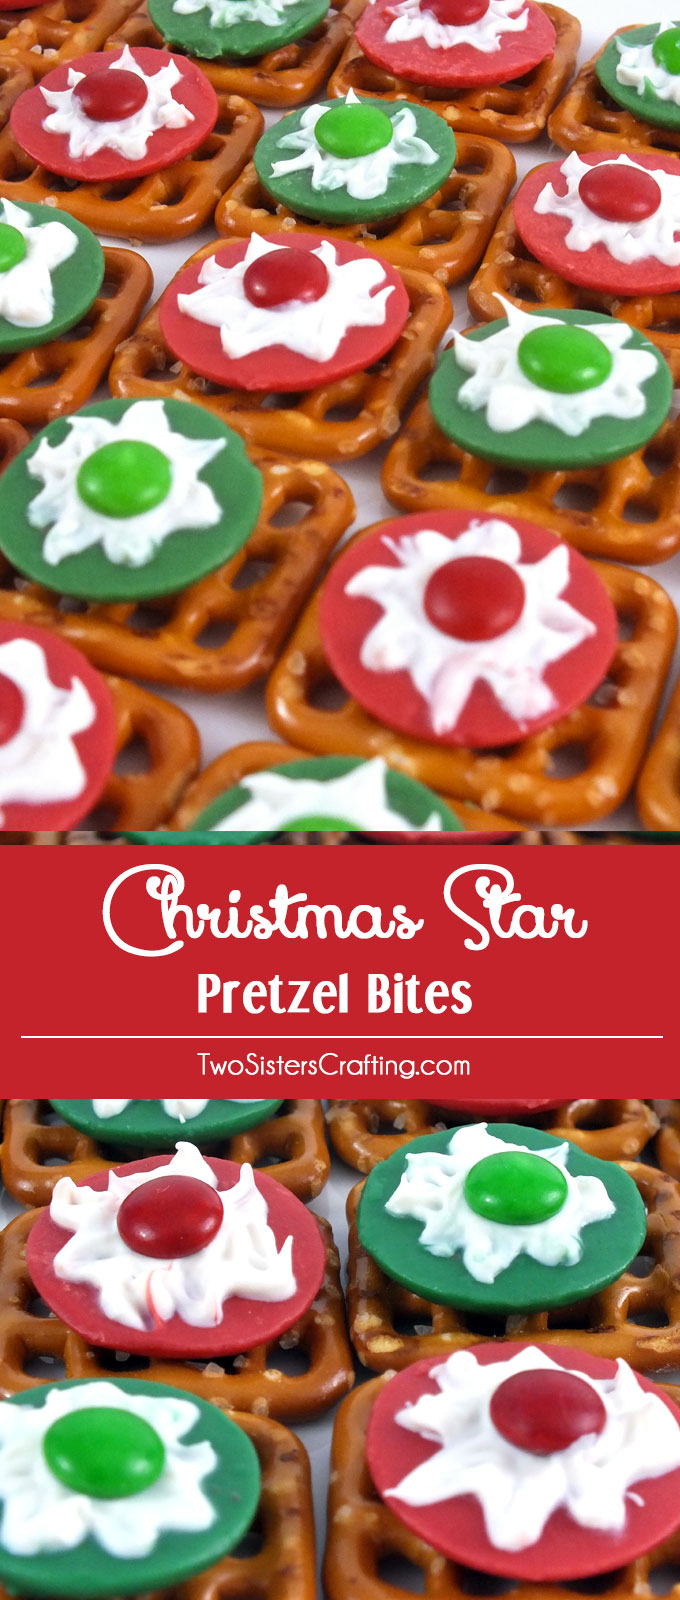 These Christmas Star Pretzel Bites make great Christmas Treats. Sweet, salty, crunchy and delicious they will be one of your favorite Christmas Desserts. Follow us for more Christmas Food ideas.